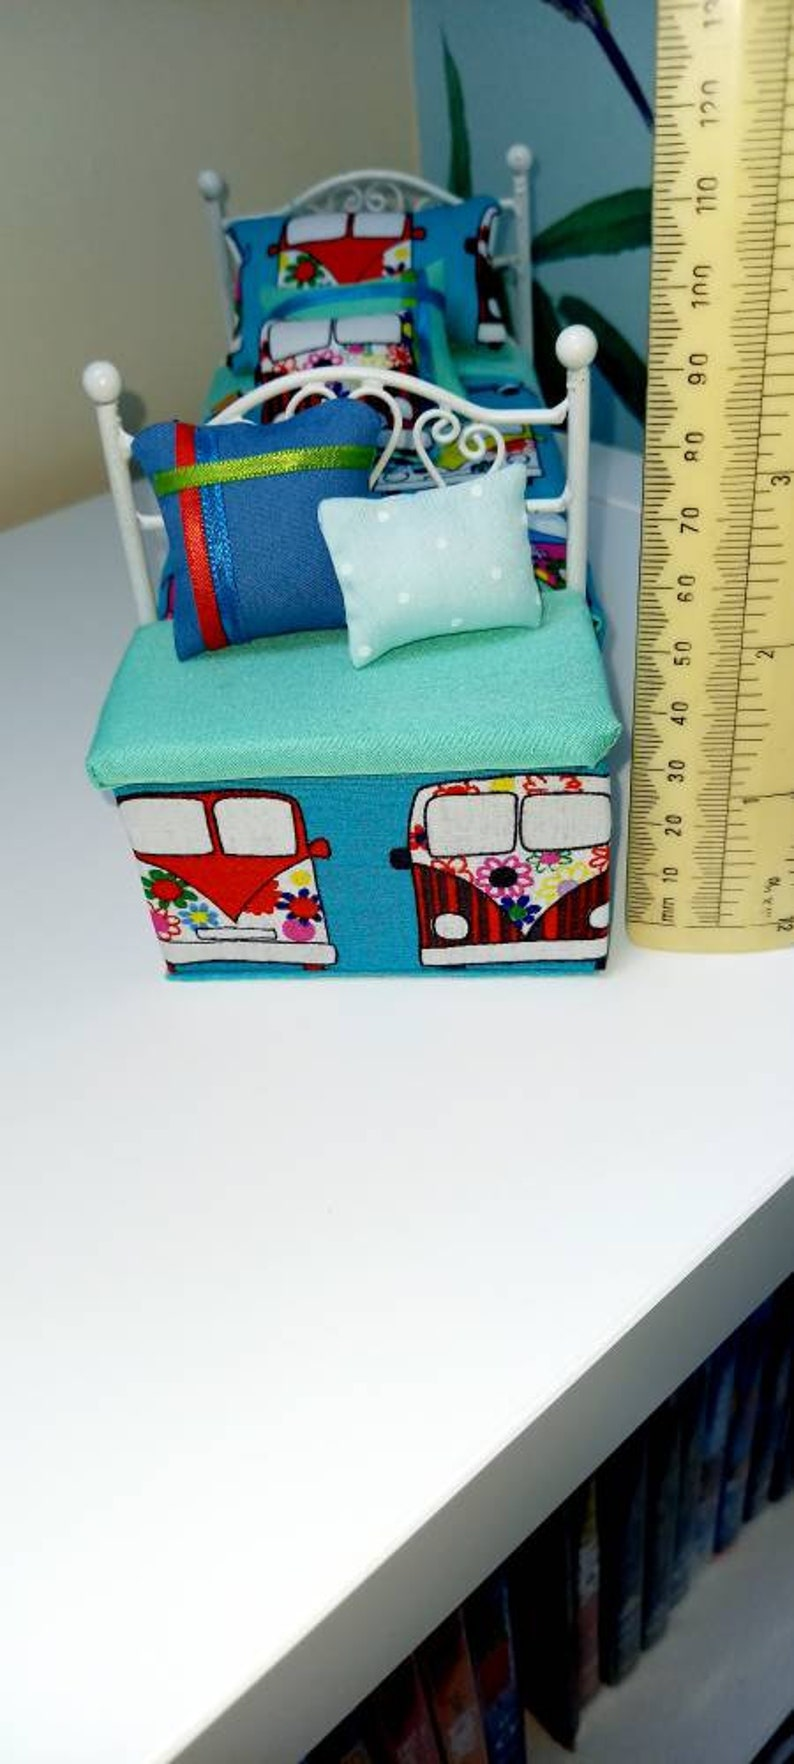 Blanket box CV material with padded fixed seat and two decorative cushions handmade 1:12 scale modern furniture